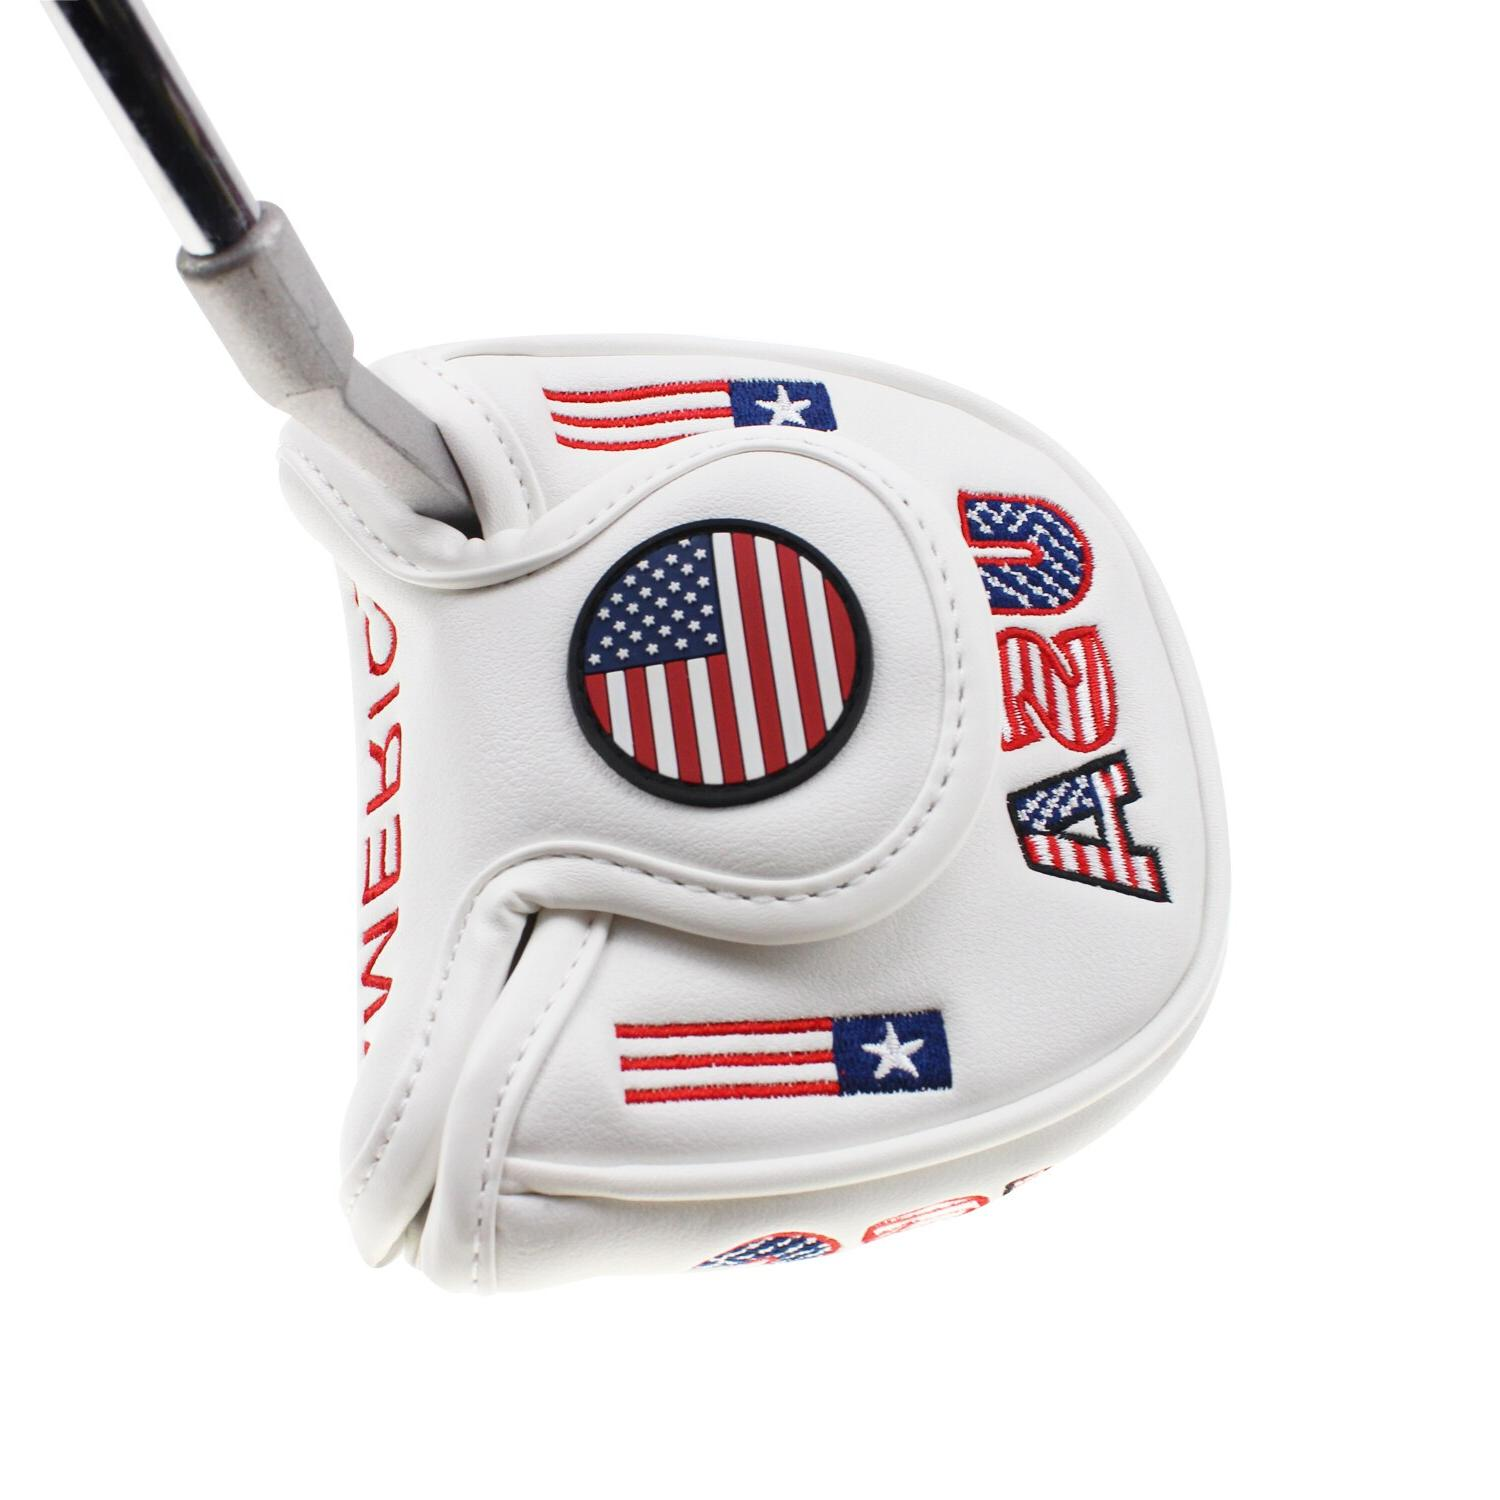 Golf USA America Mallet <font><b>Headcover</b></font> for <font><b>Odyssey</b></font> Design Perfect Quality Head Golf